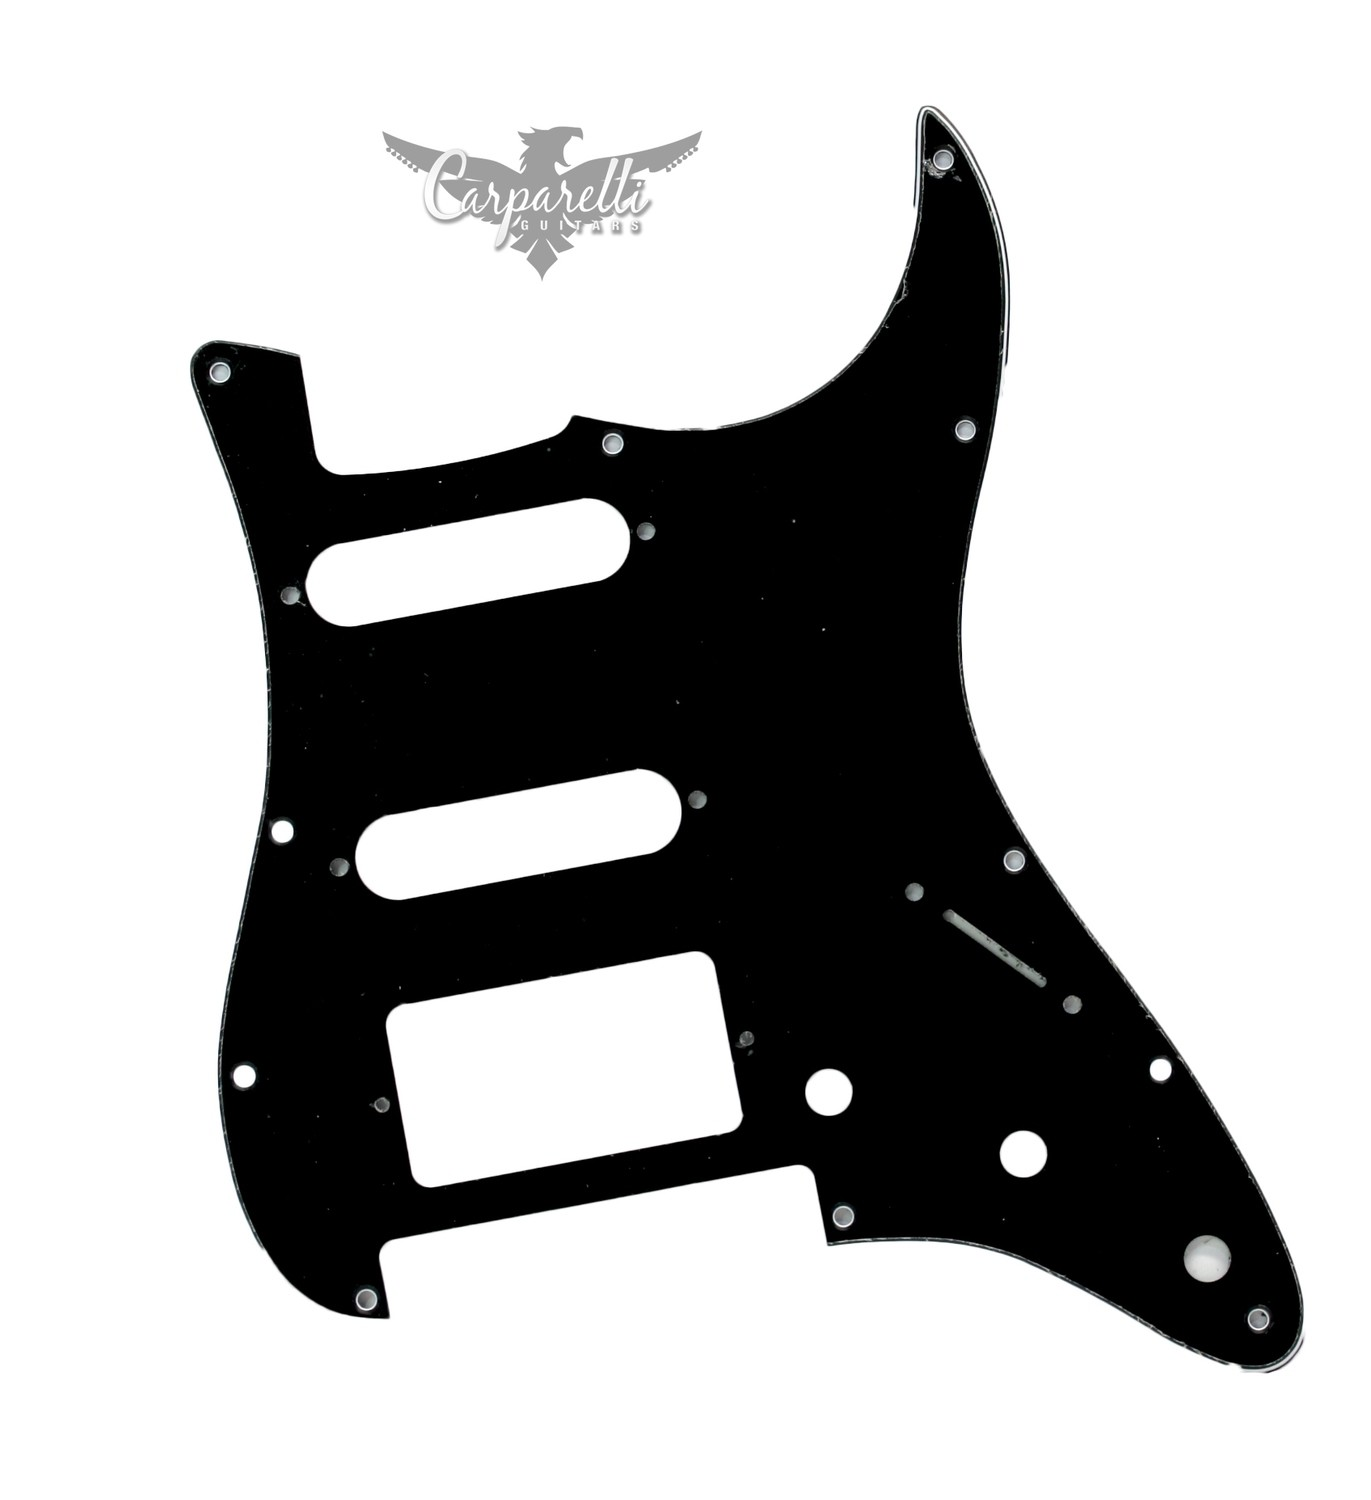 Carparelli HSS Floyd Rose Cut for Fender Strat 3 Ply Black